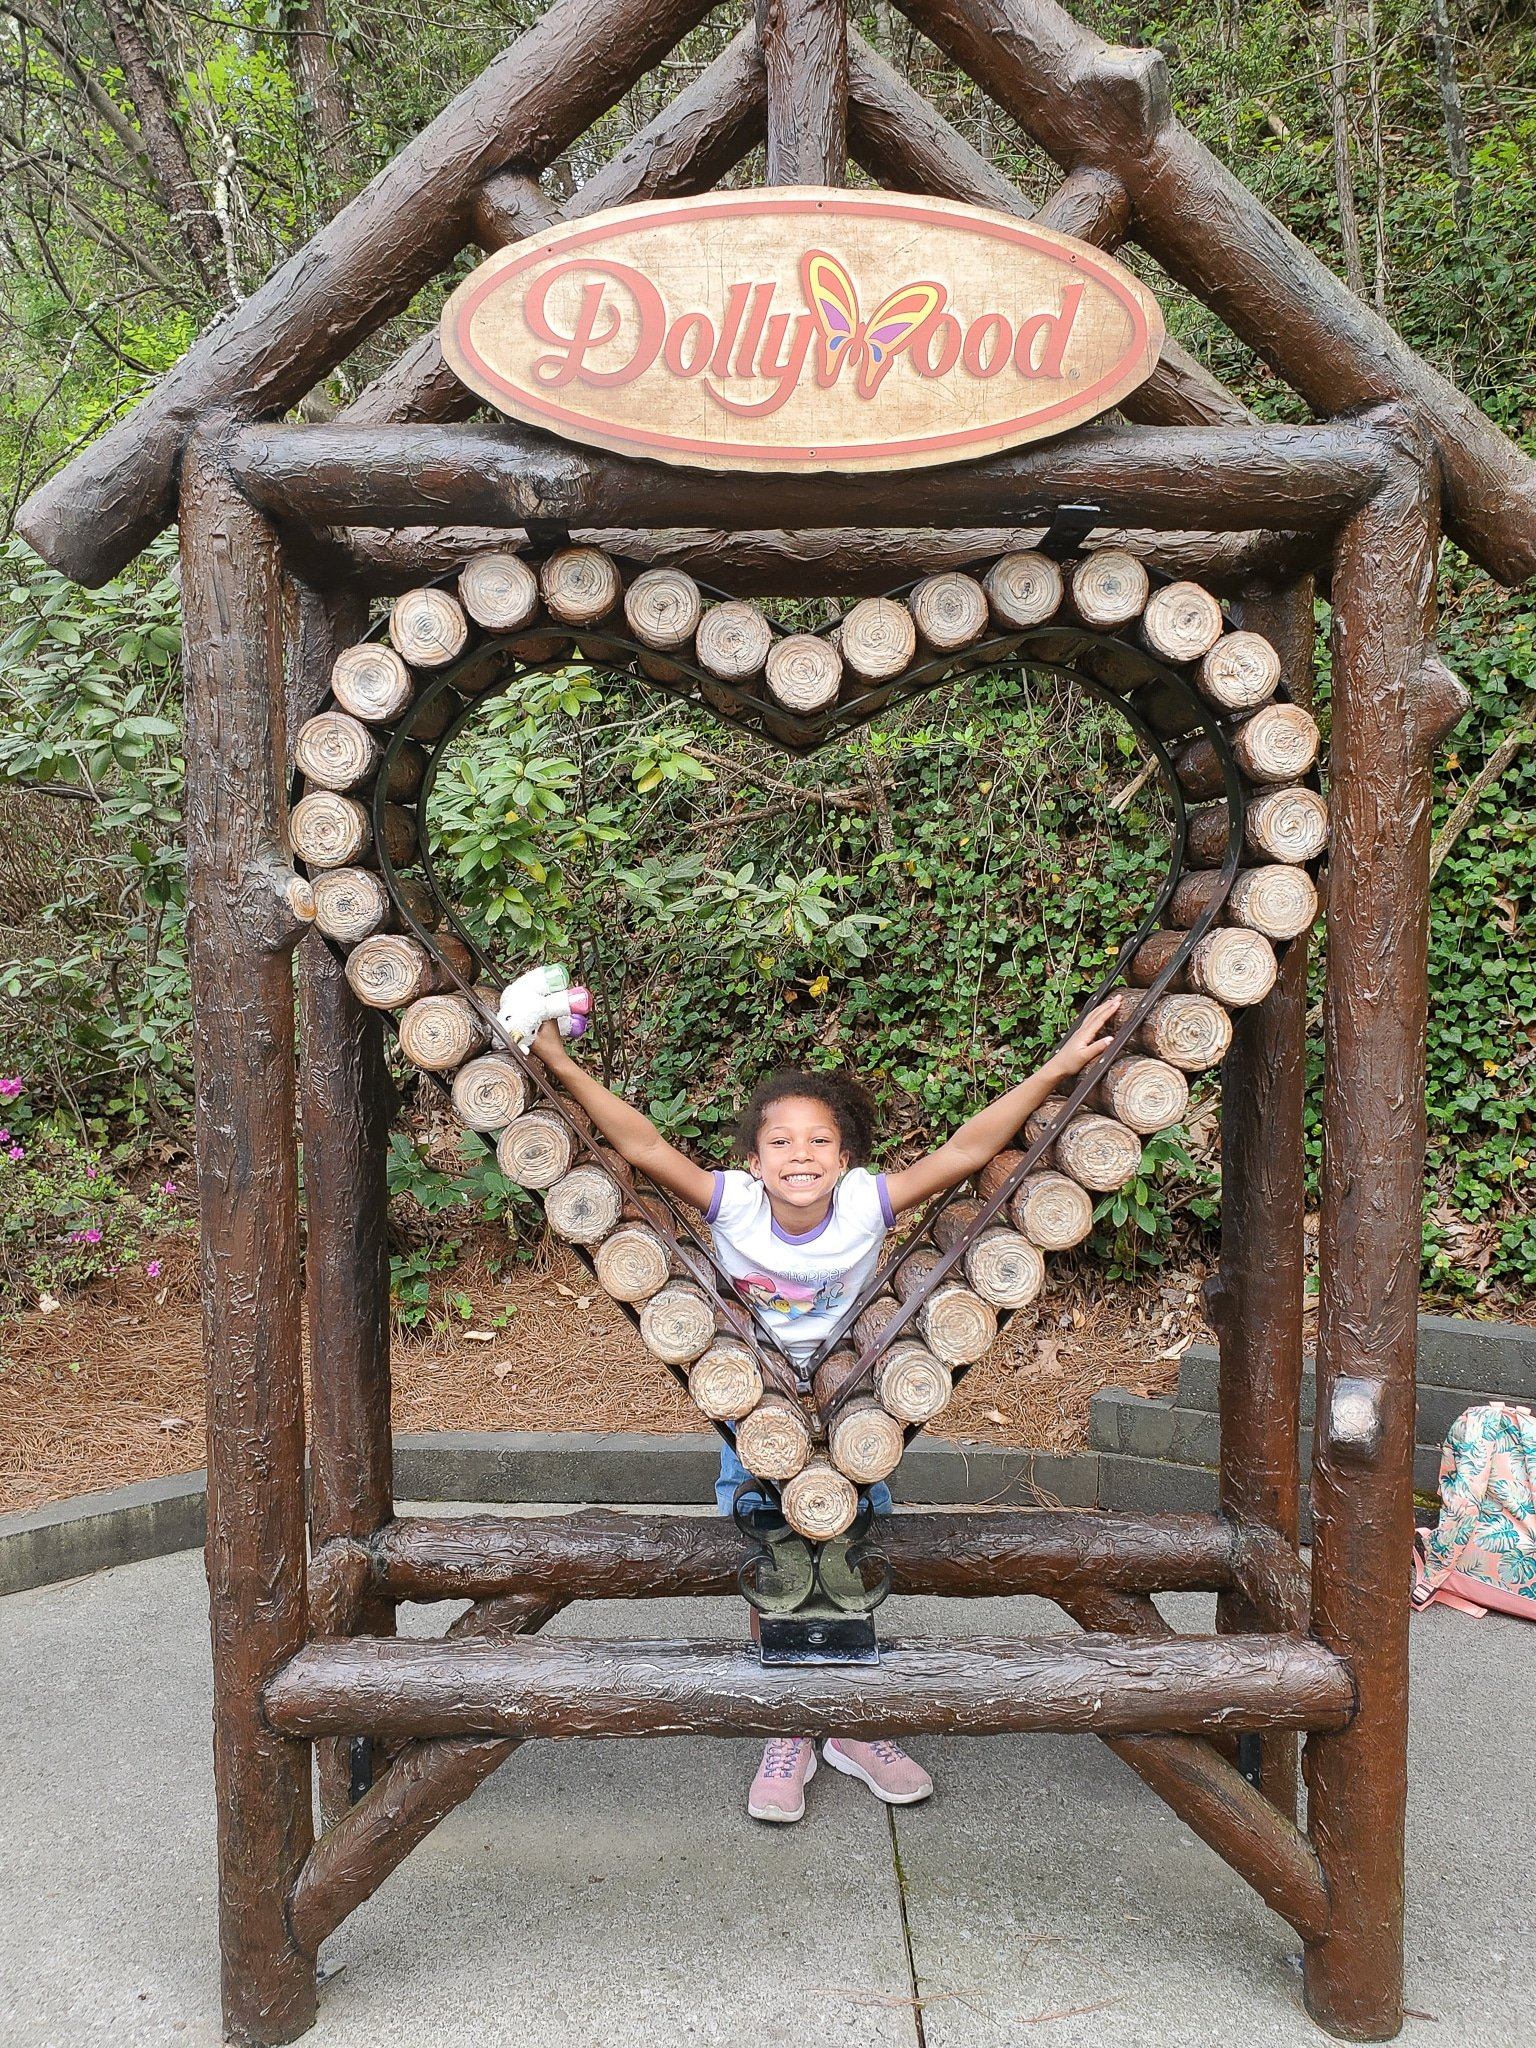 Family Fun At Dollywood In Pigeon Forge Tn Jays Sweet N